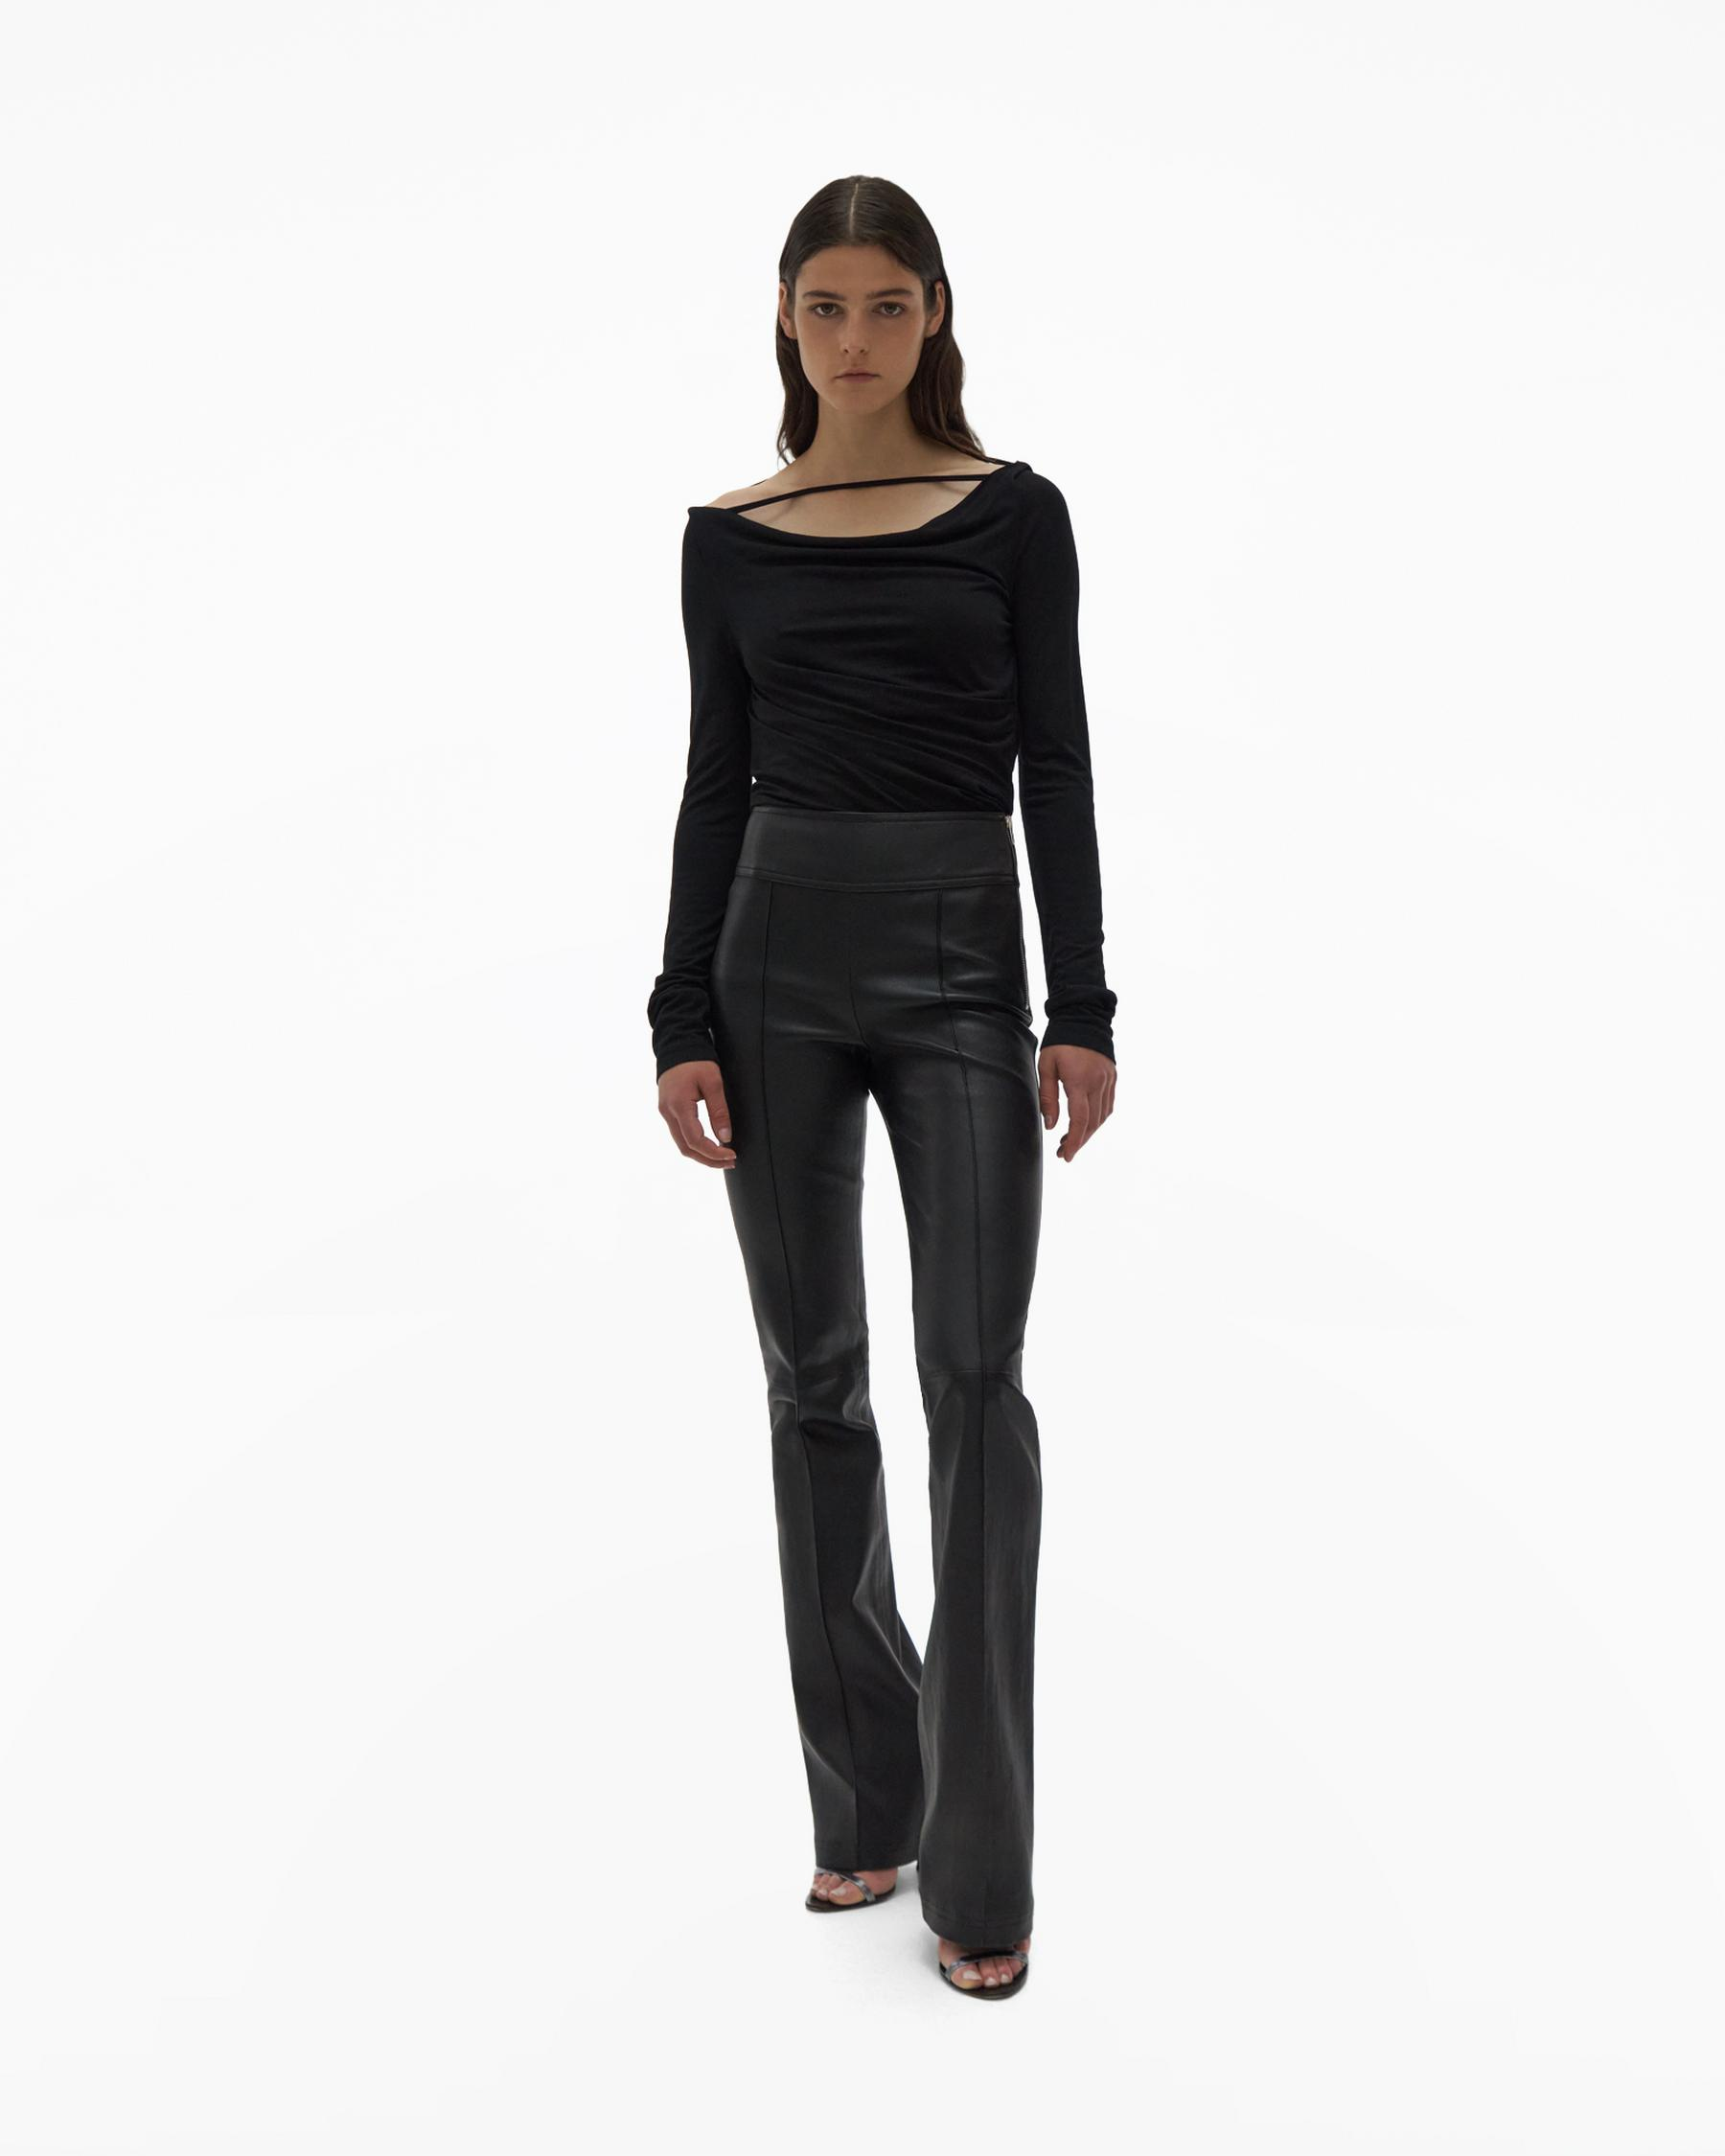 Helmut Lang: Surplus Sale Up To 80% Off